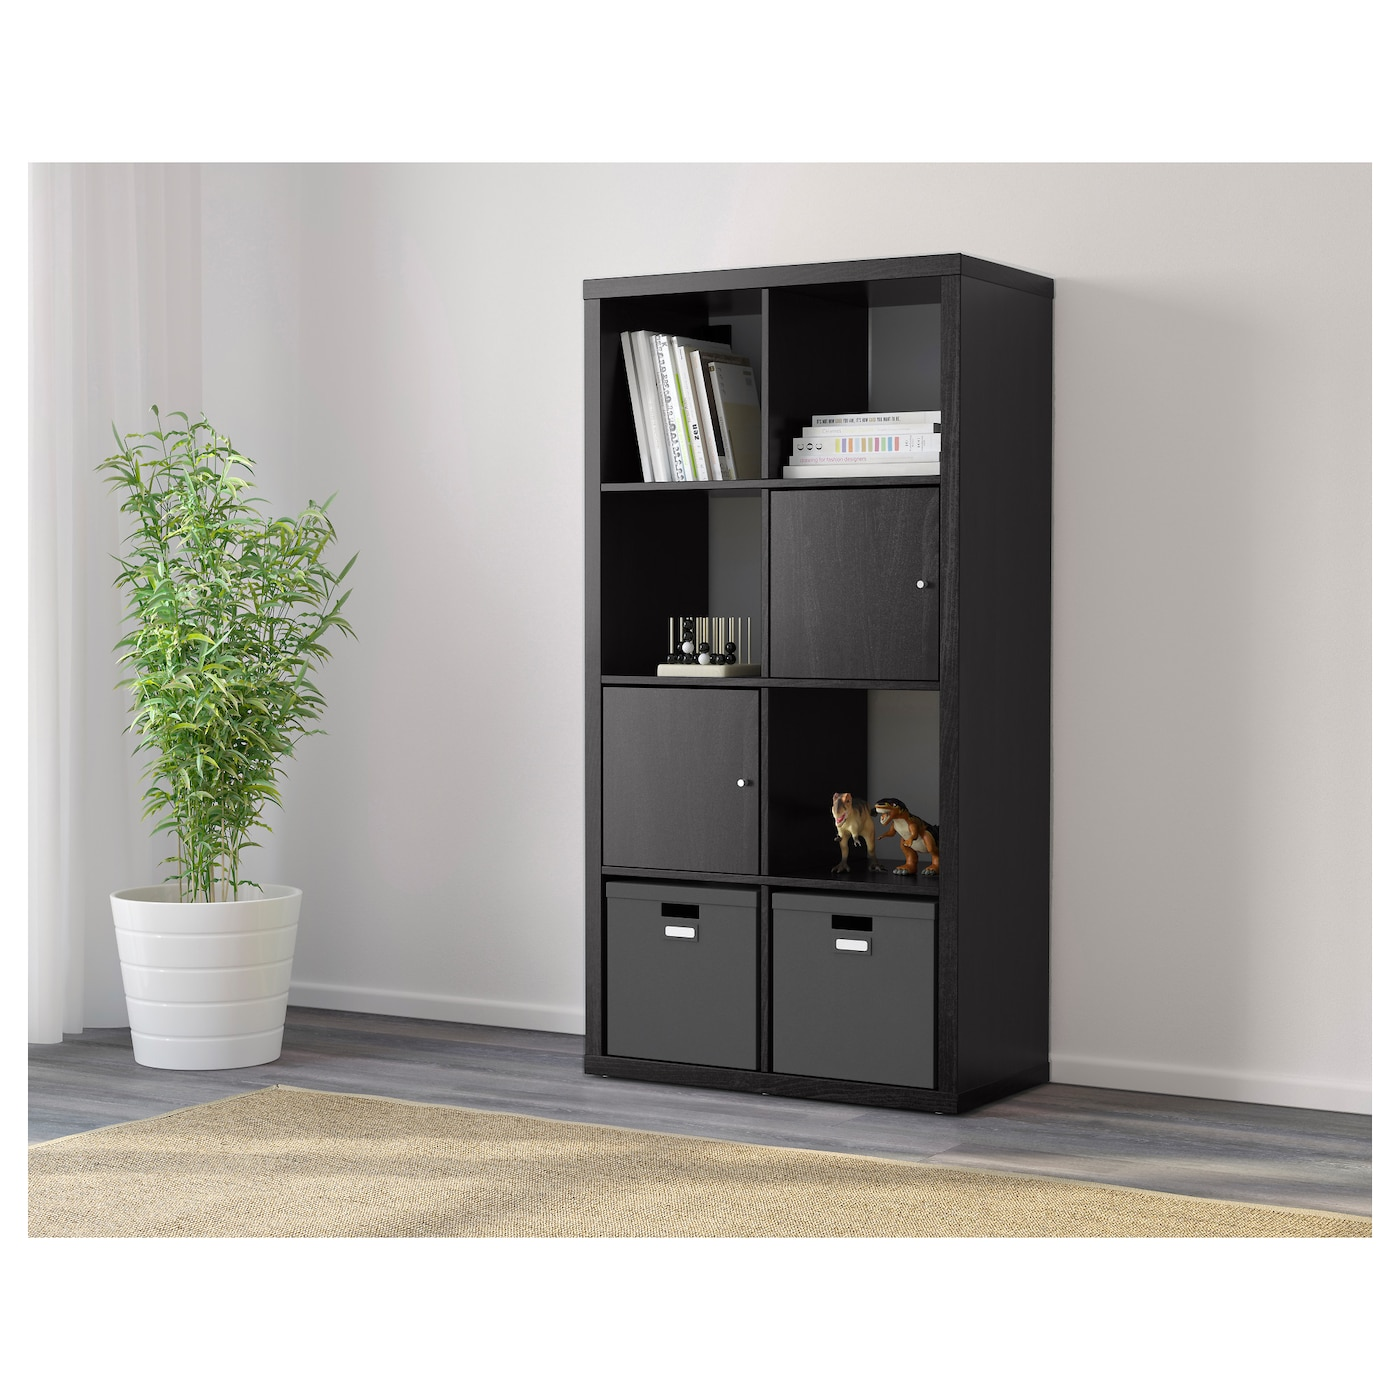 kallax shelving unit black brown 77x147 cm ikea. Black Bedroom Furniture Sets. Home Design Ideas